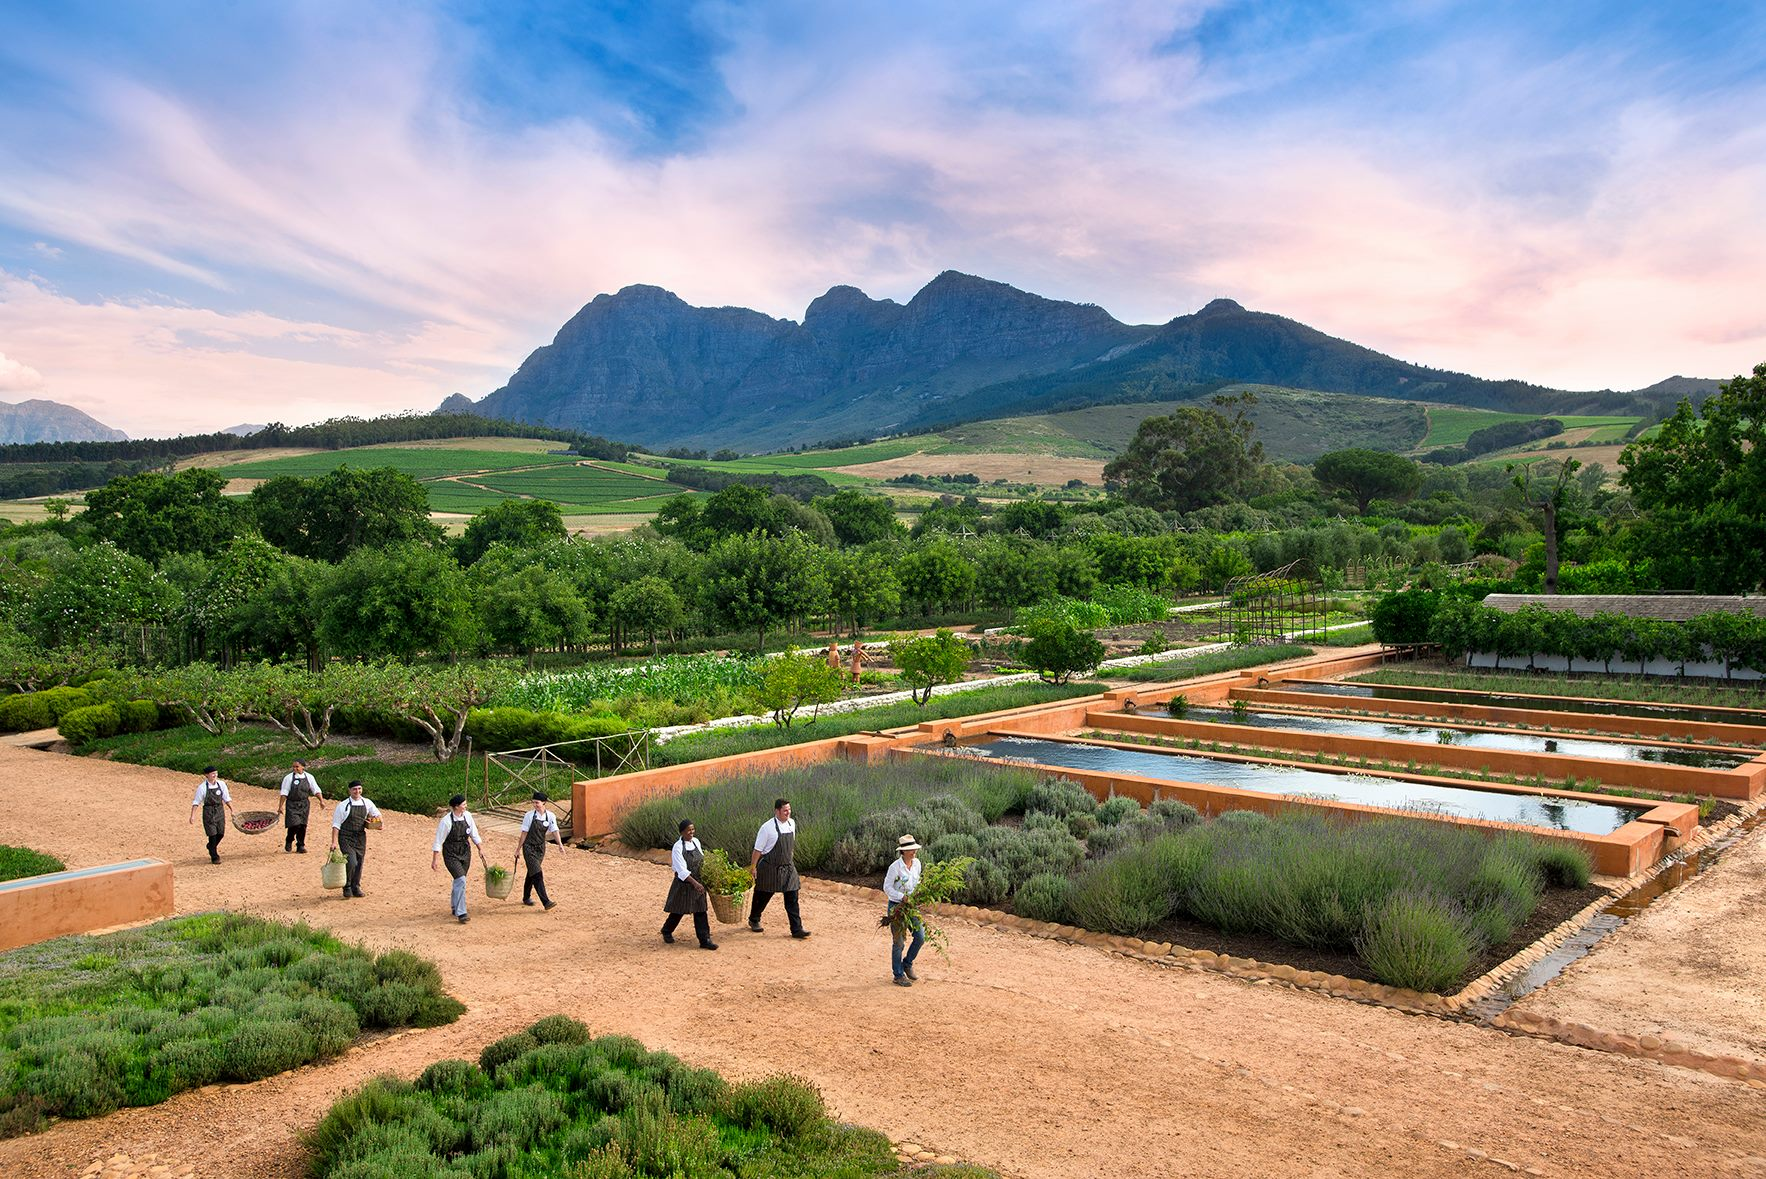 Babylonstoren south africa travel stijlmeisje for Jardin winery south africa